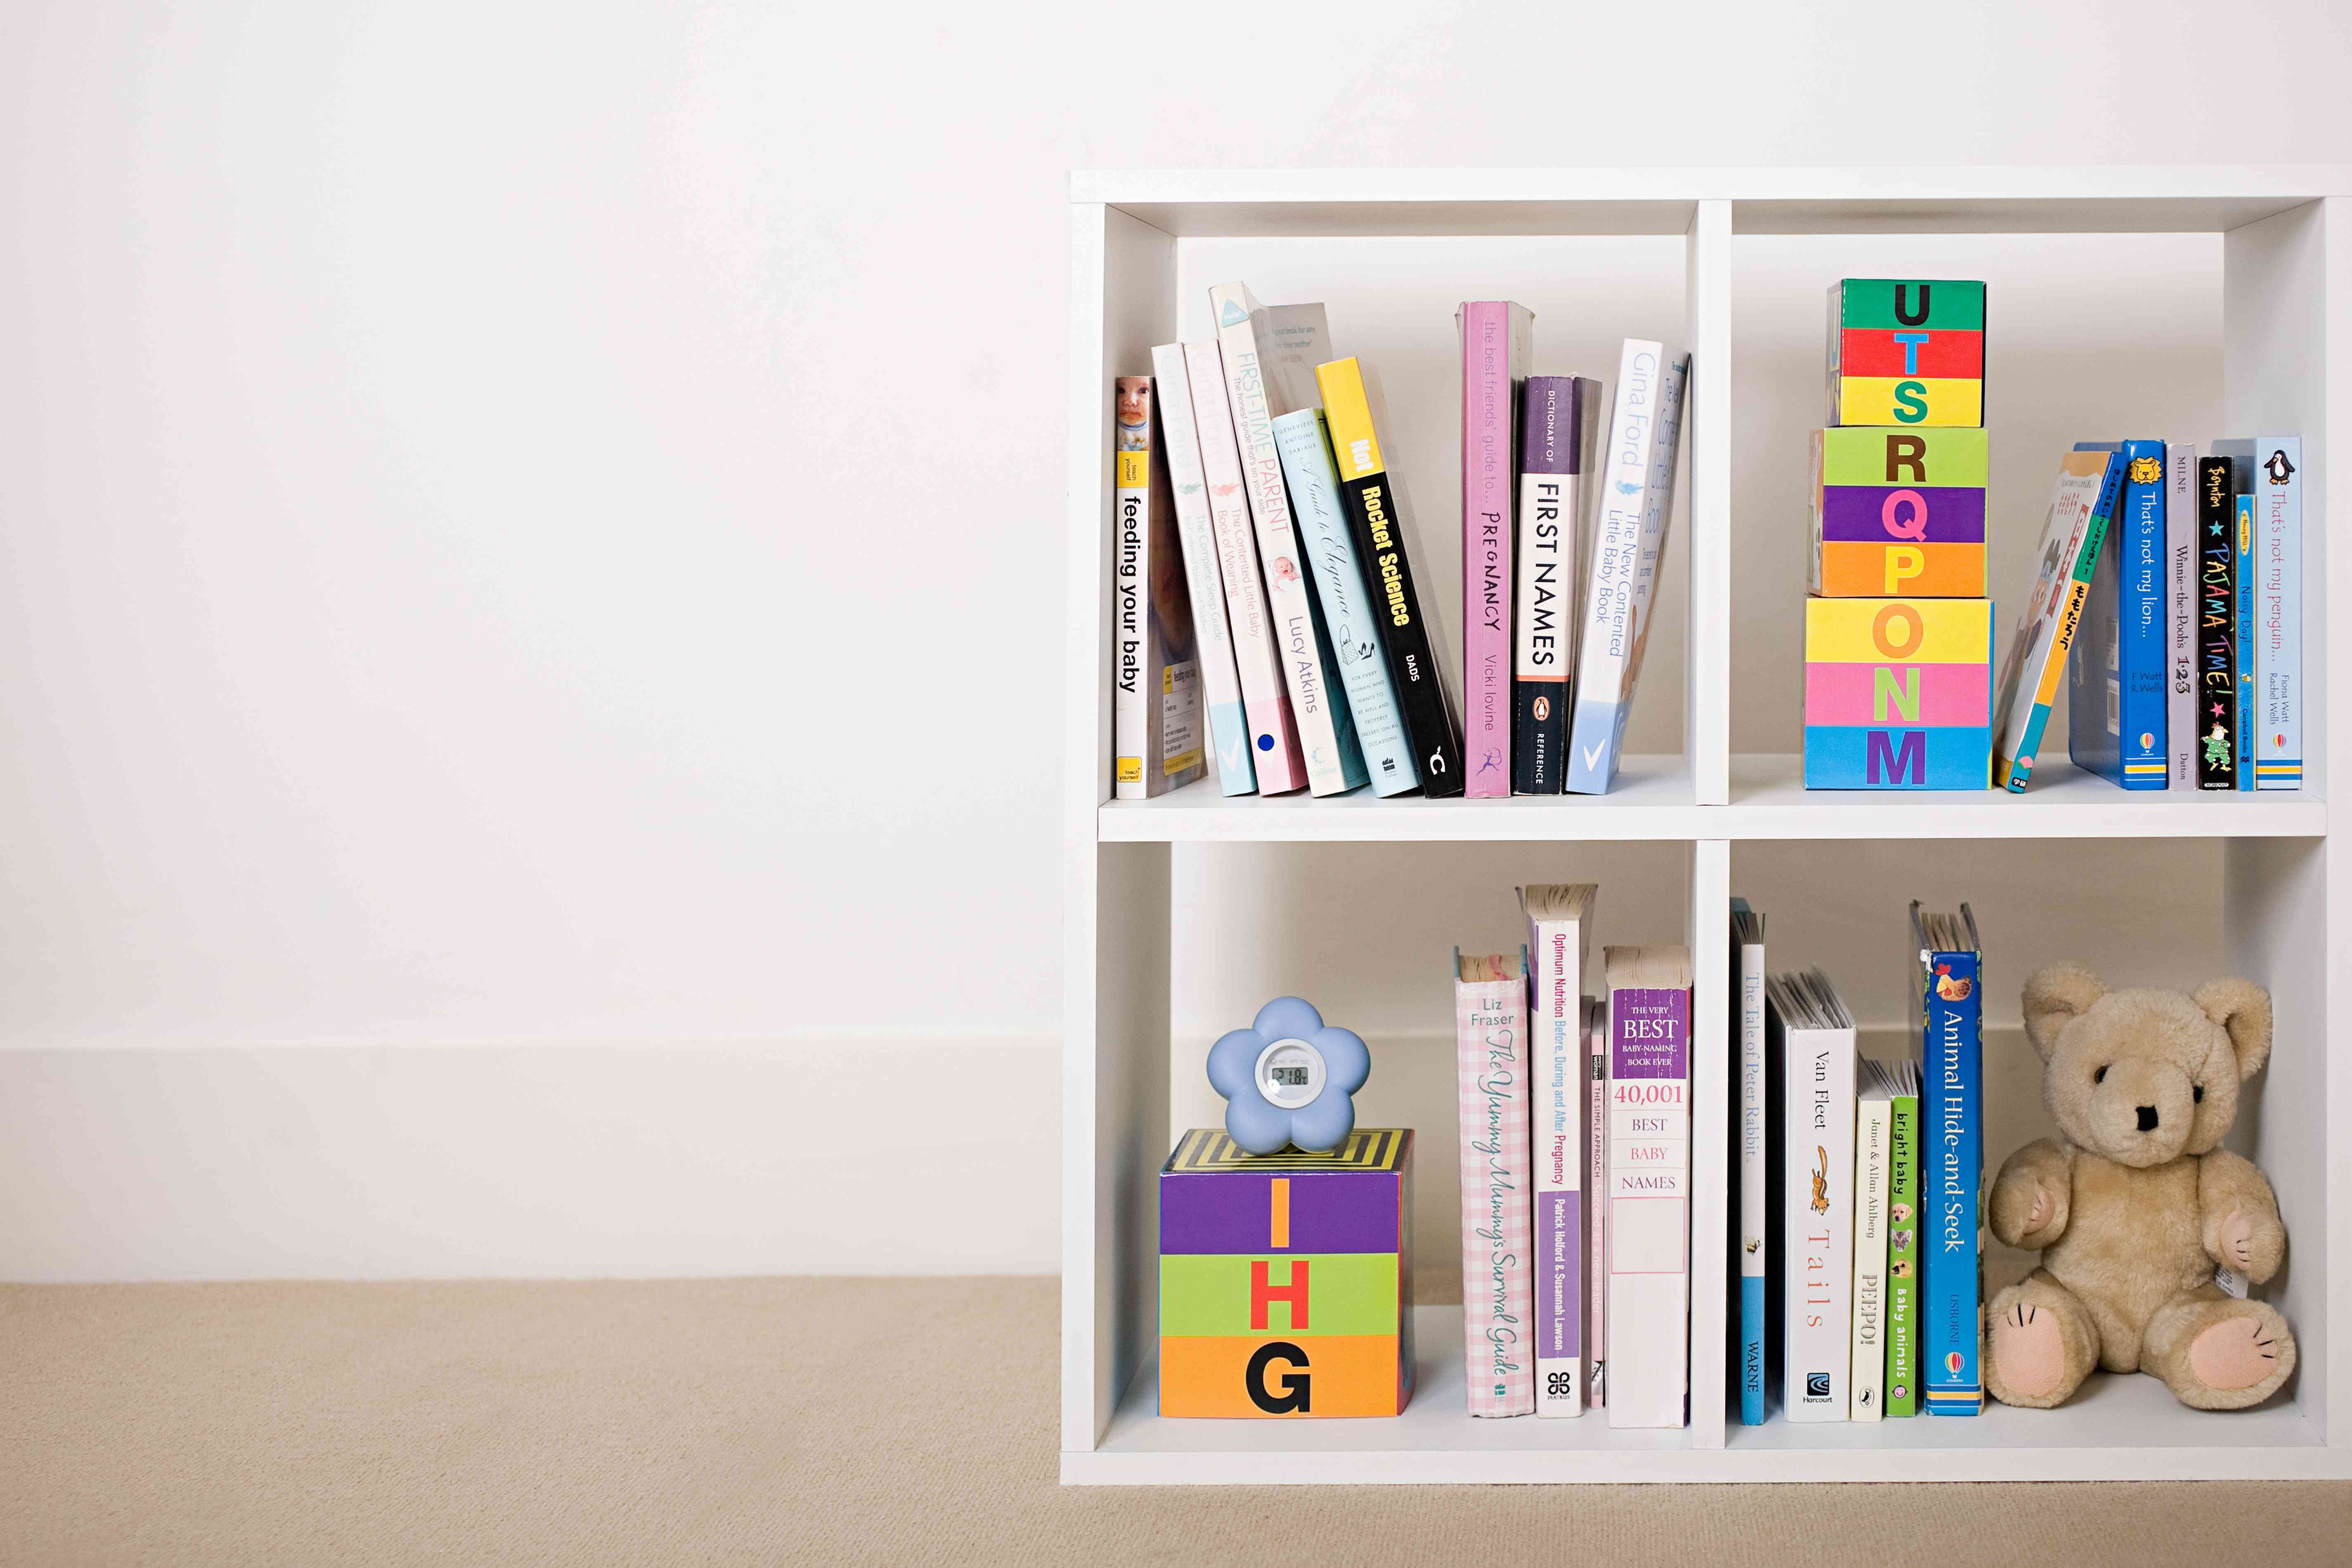 Book shelves with books and toys